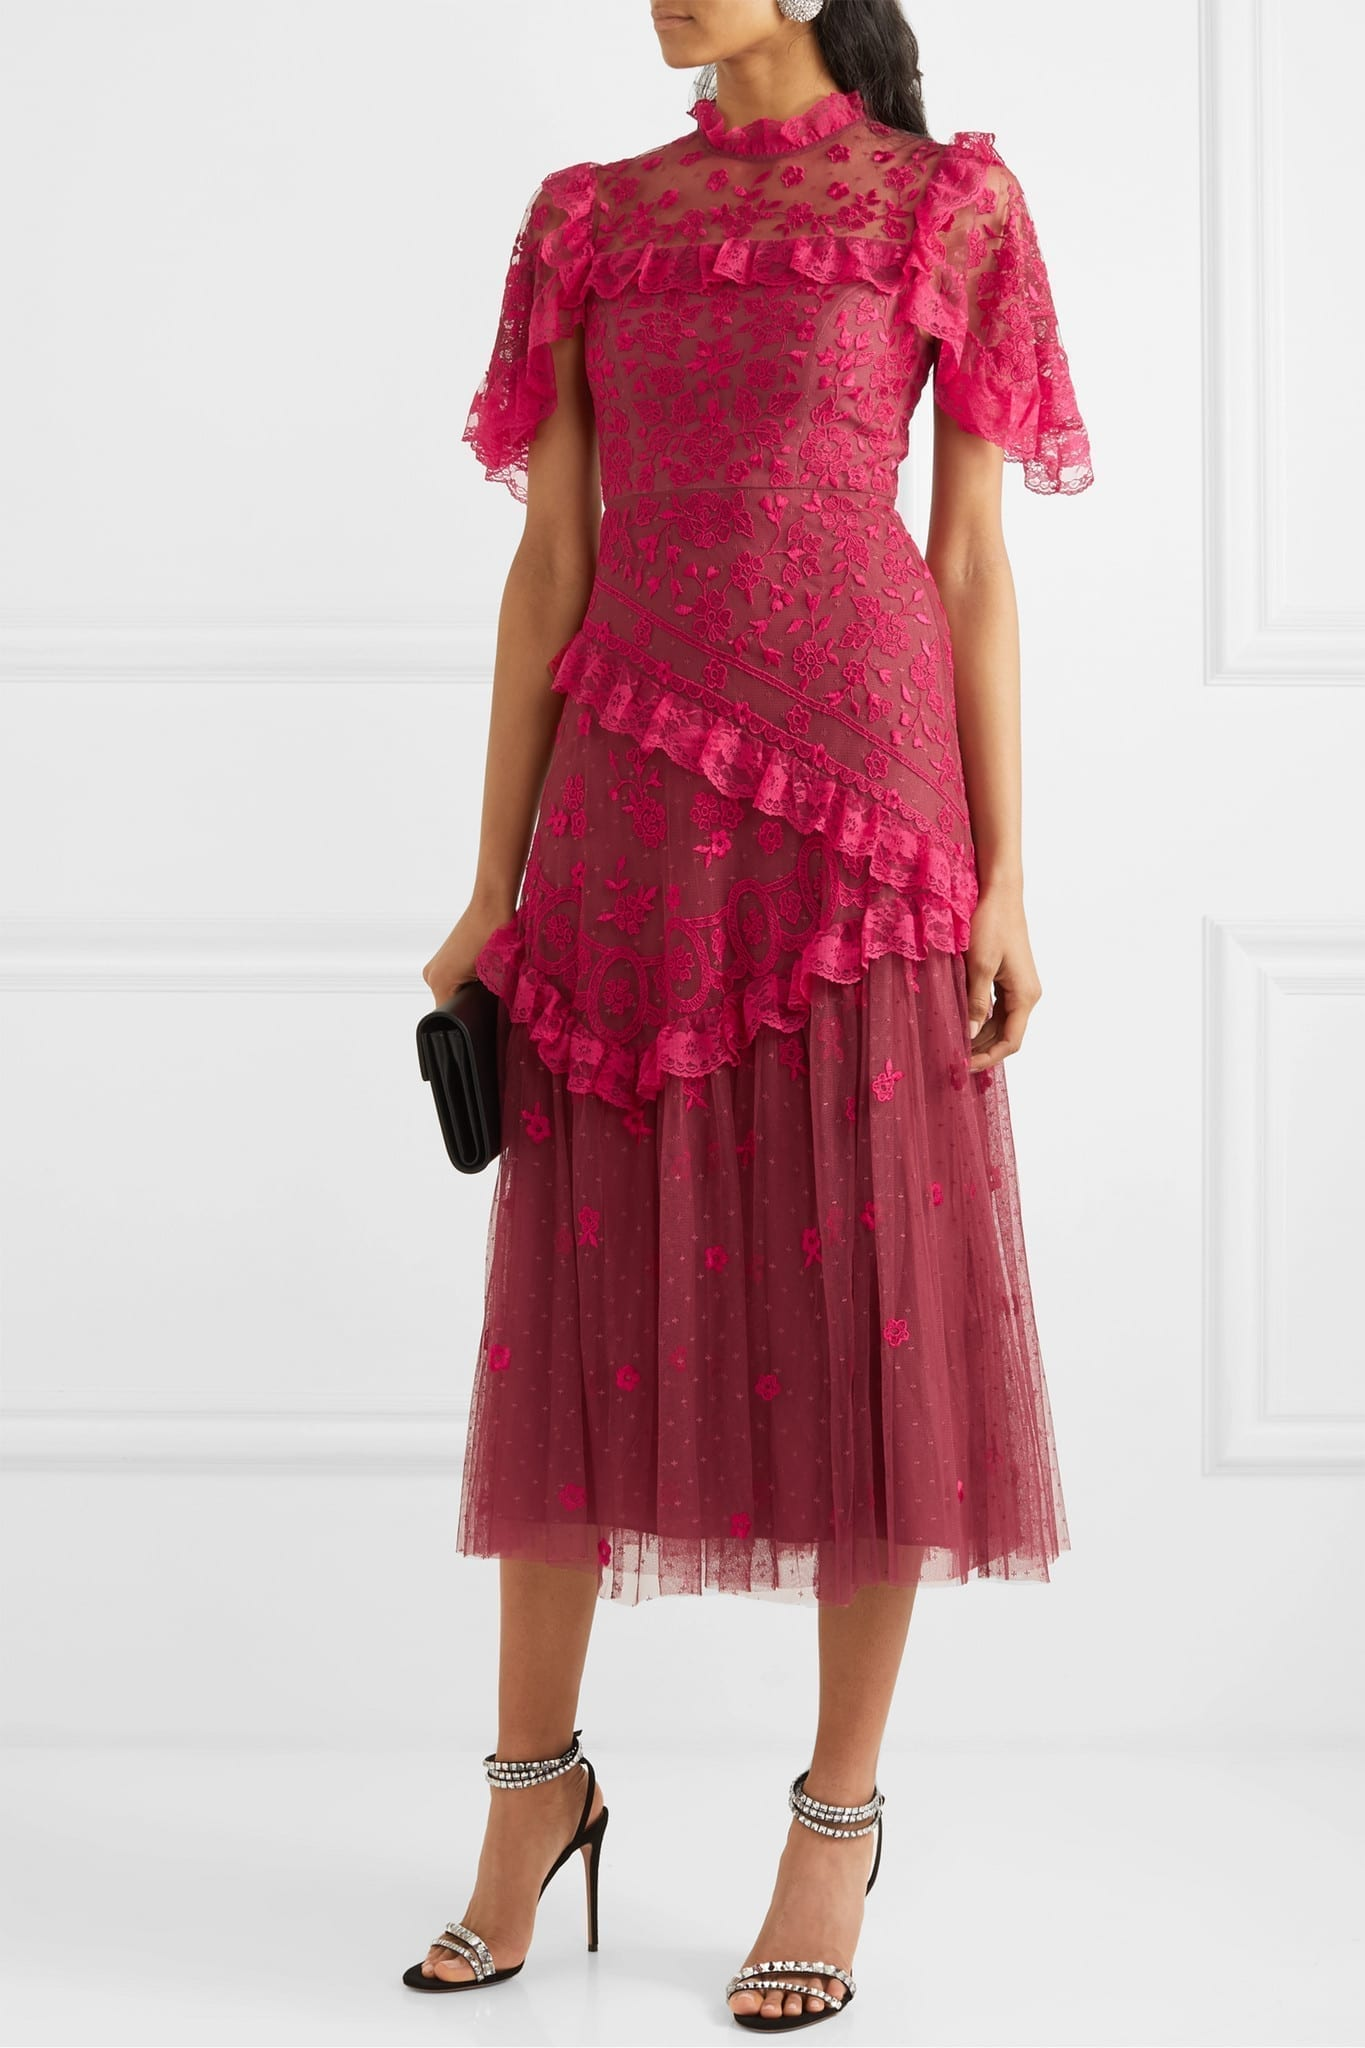 NEEDLE & THREAD Elsa Ballerina Ruffled Lace-trimmed Embroidered Tulle Midi Dress